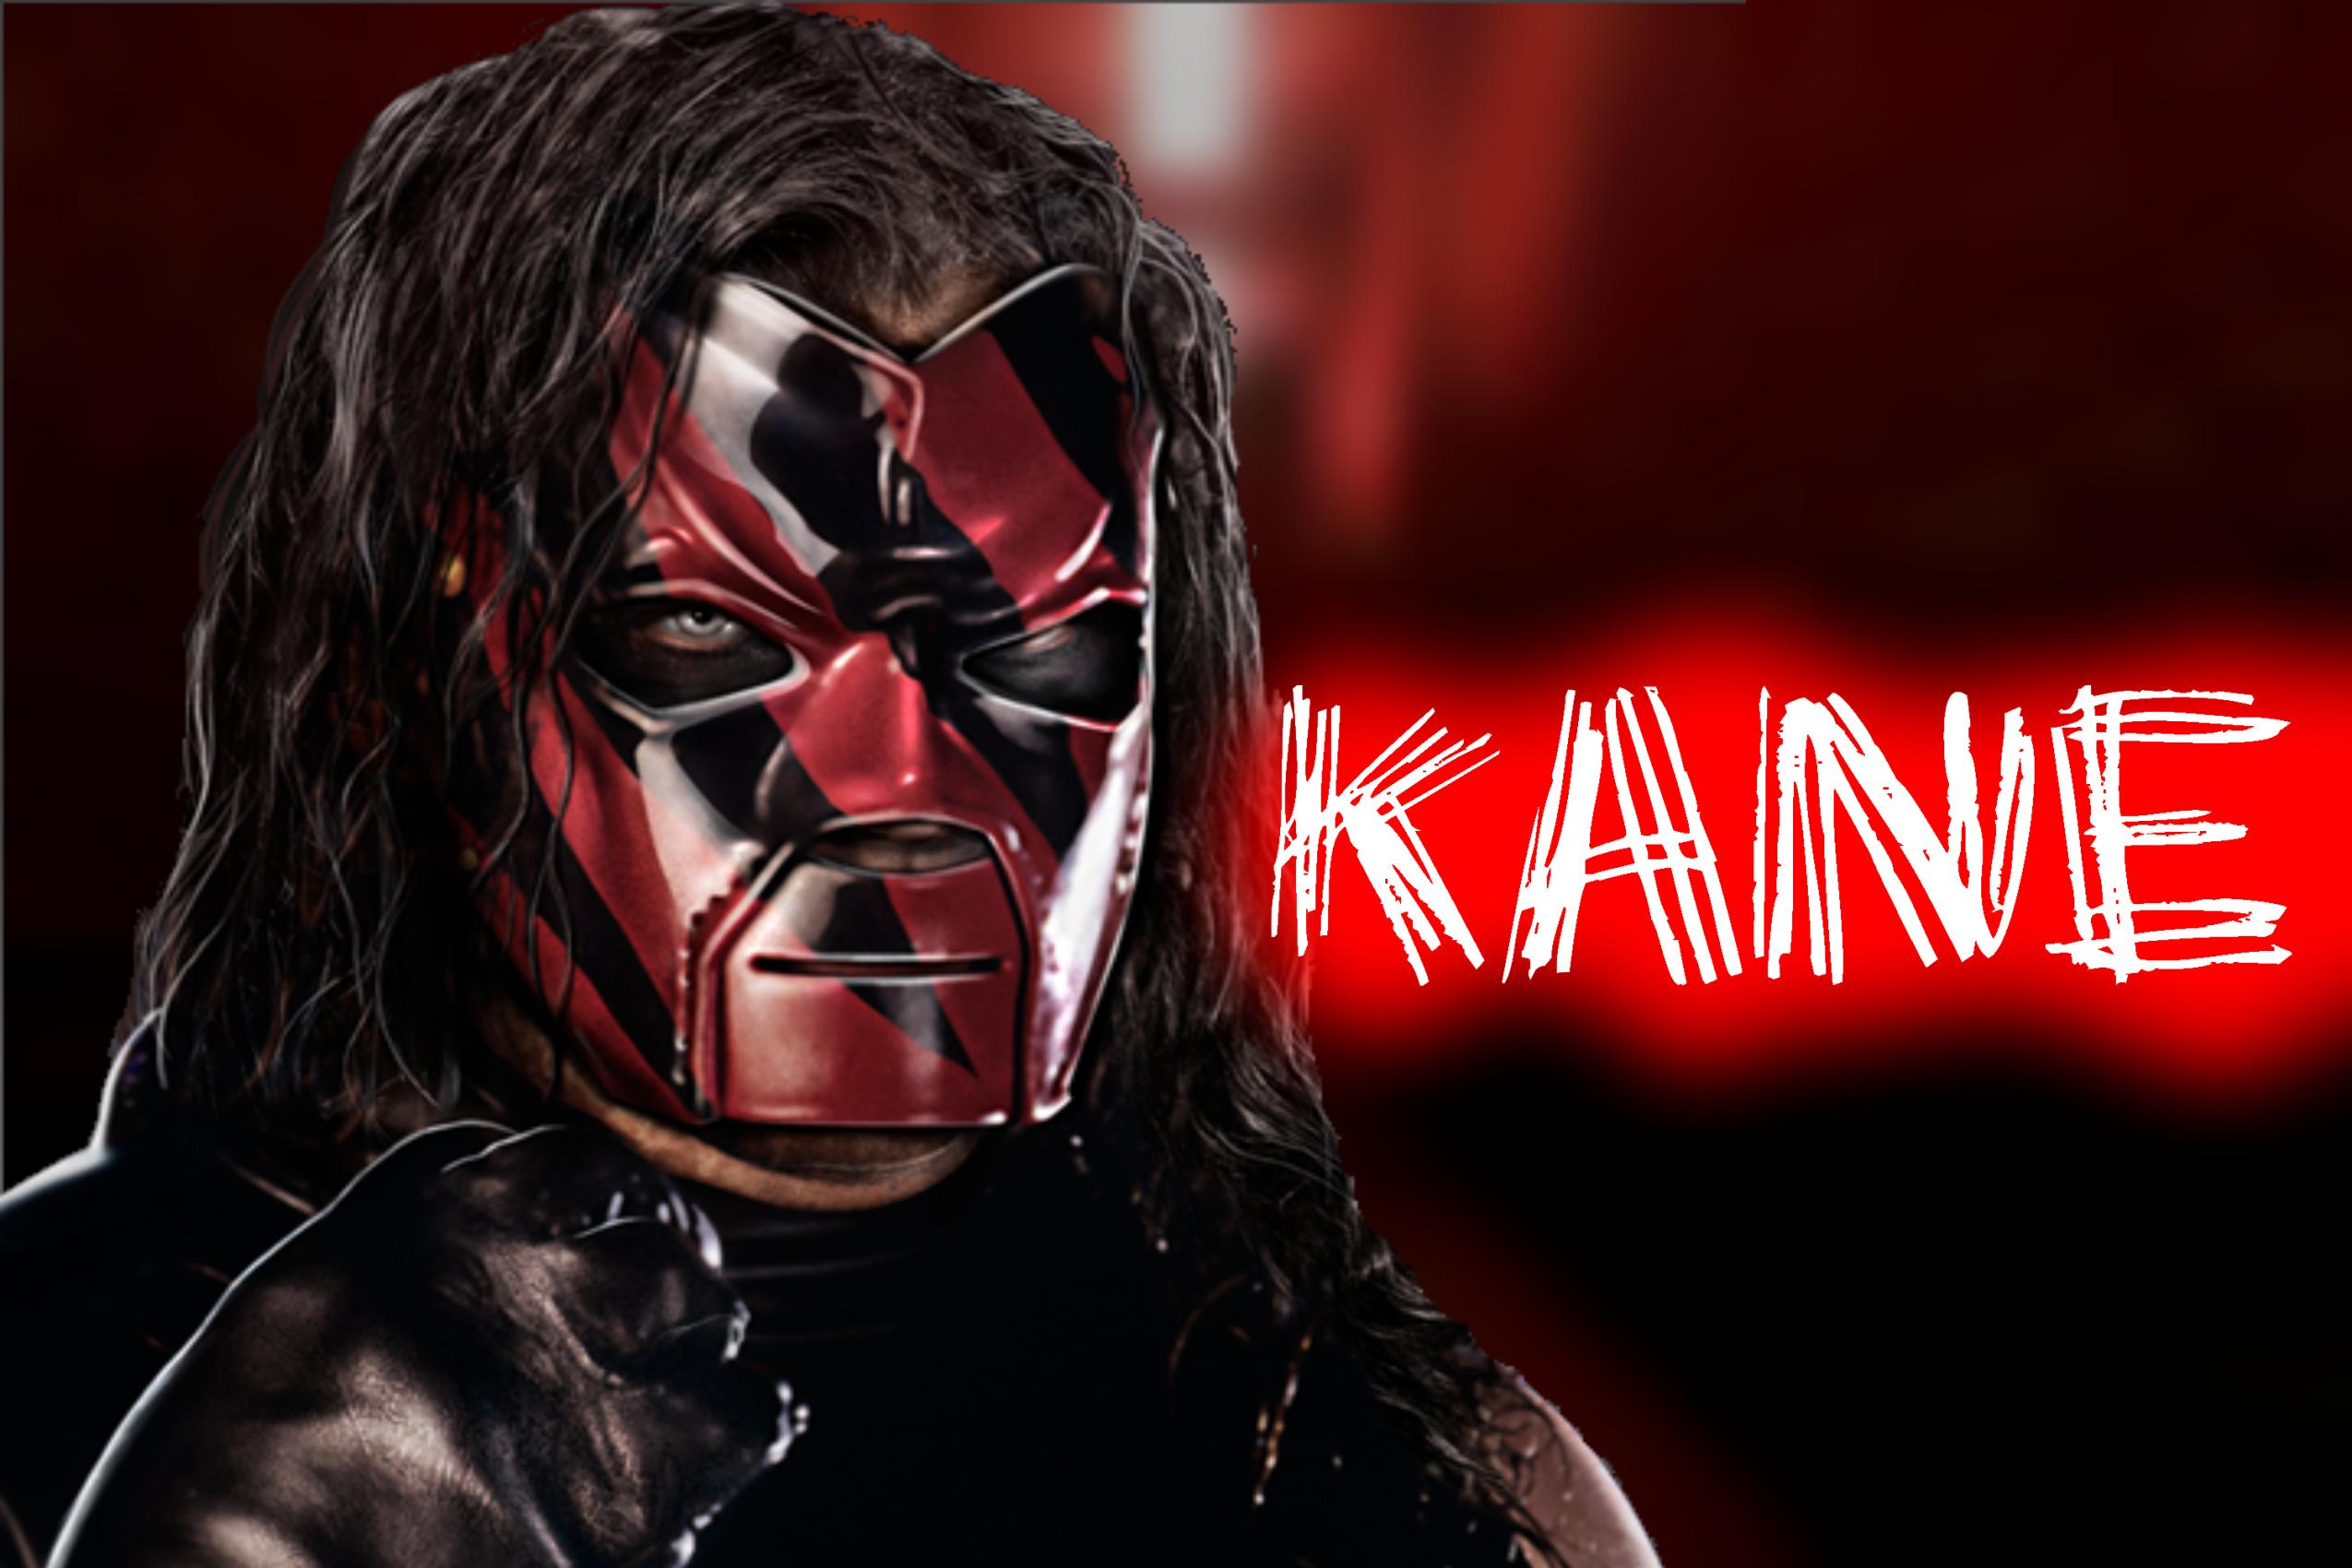 Wwe Wallpapers Pictures Images HD Wallpapers Download Free Images Wallpaper [1000image.com]